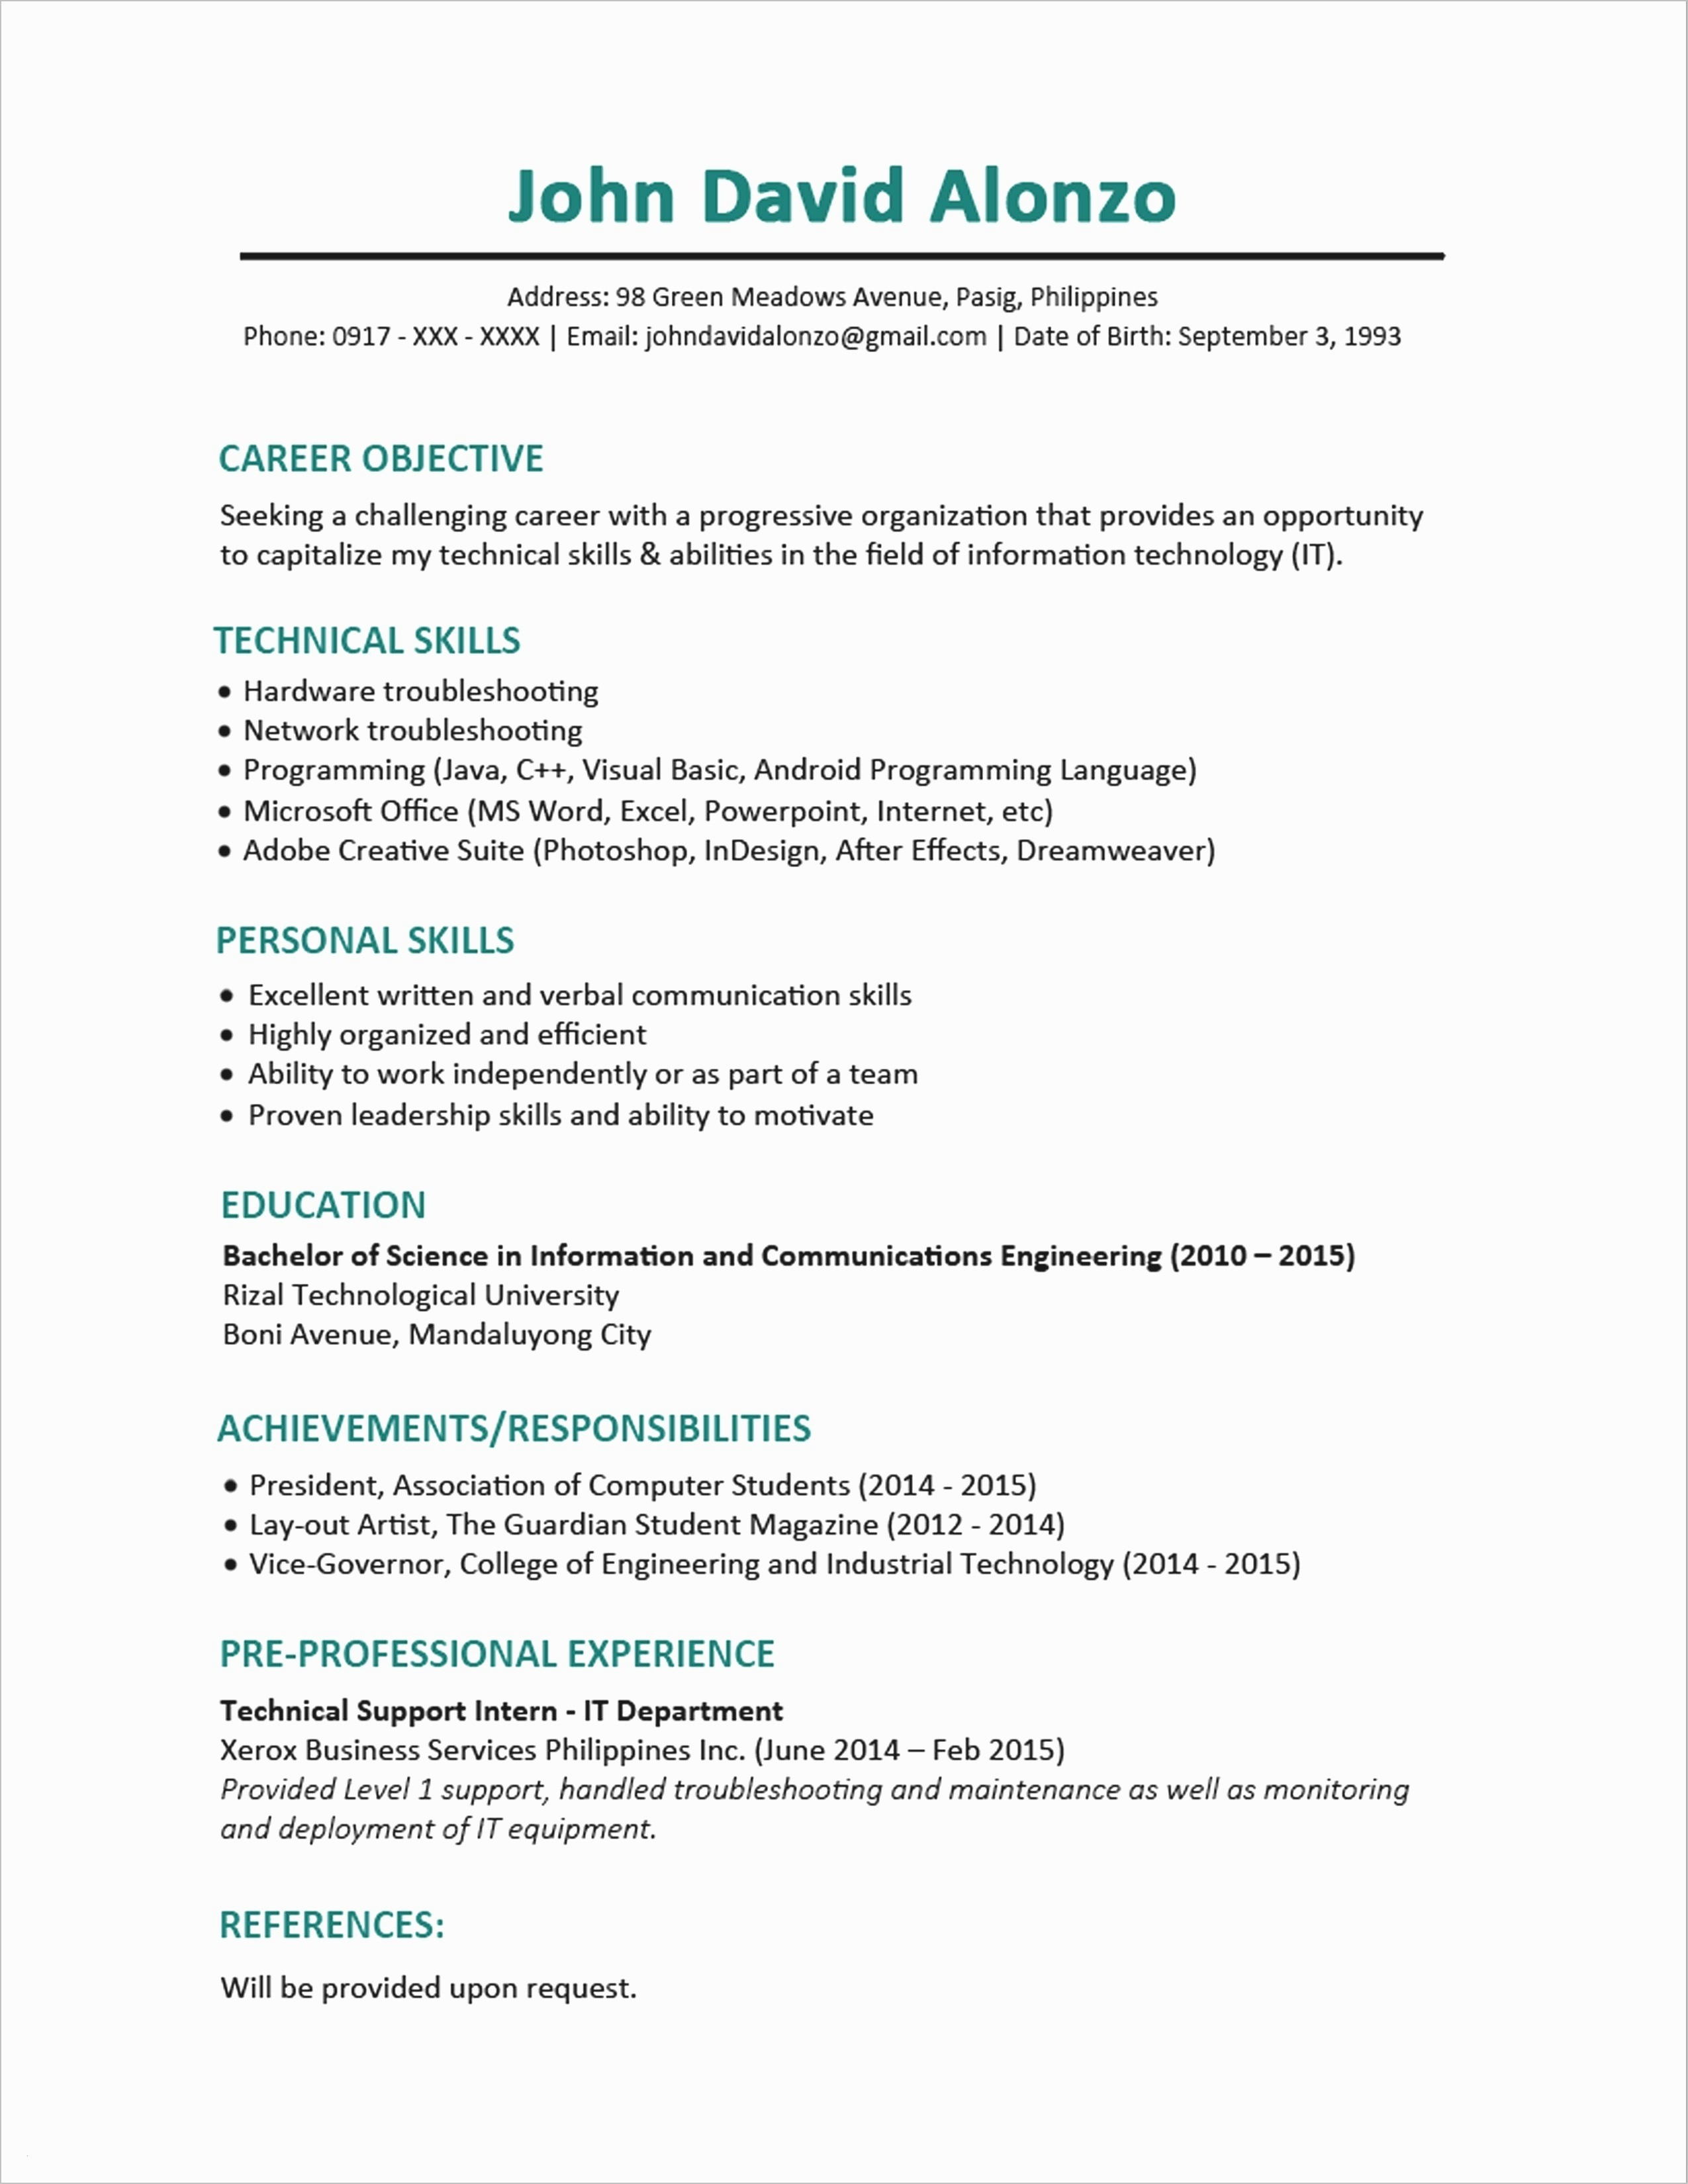 Environmental Services Resume Sample - Church order Service Template Resume Action Verbs Awesome Awesome